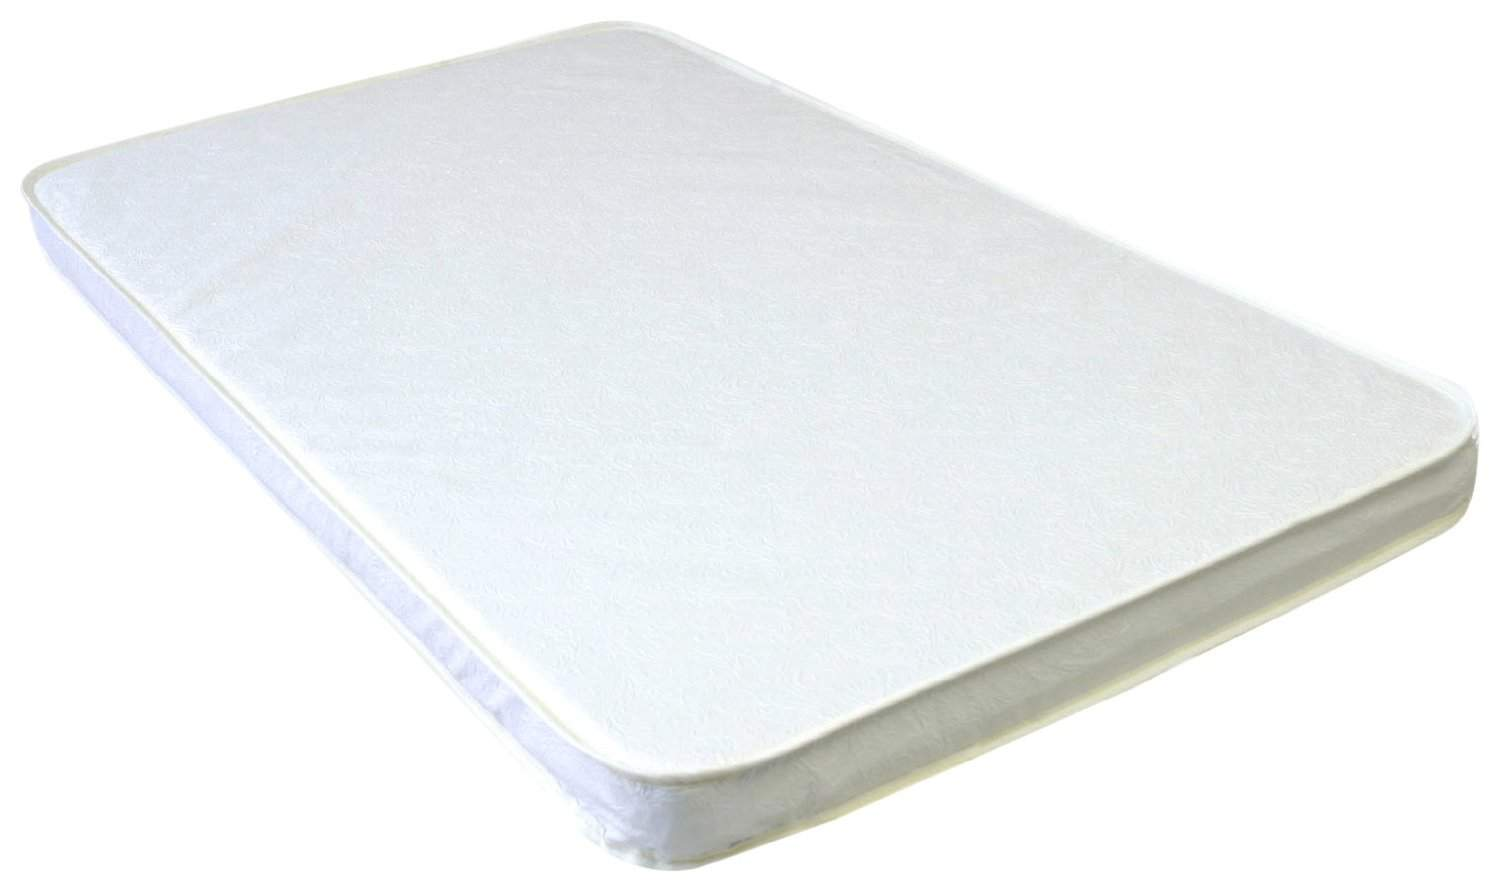 "Best Pack n Play Mattress Under $25 - LA Baby 2"" Compact Crib Mattress  (White)"